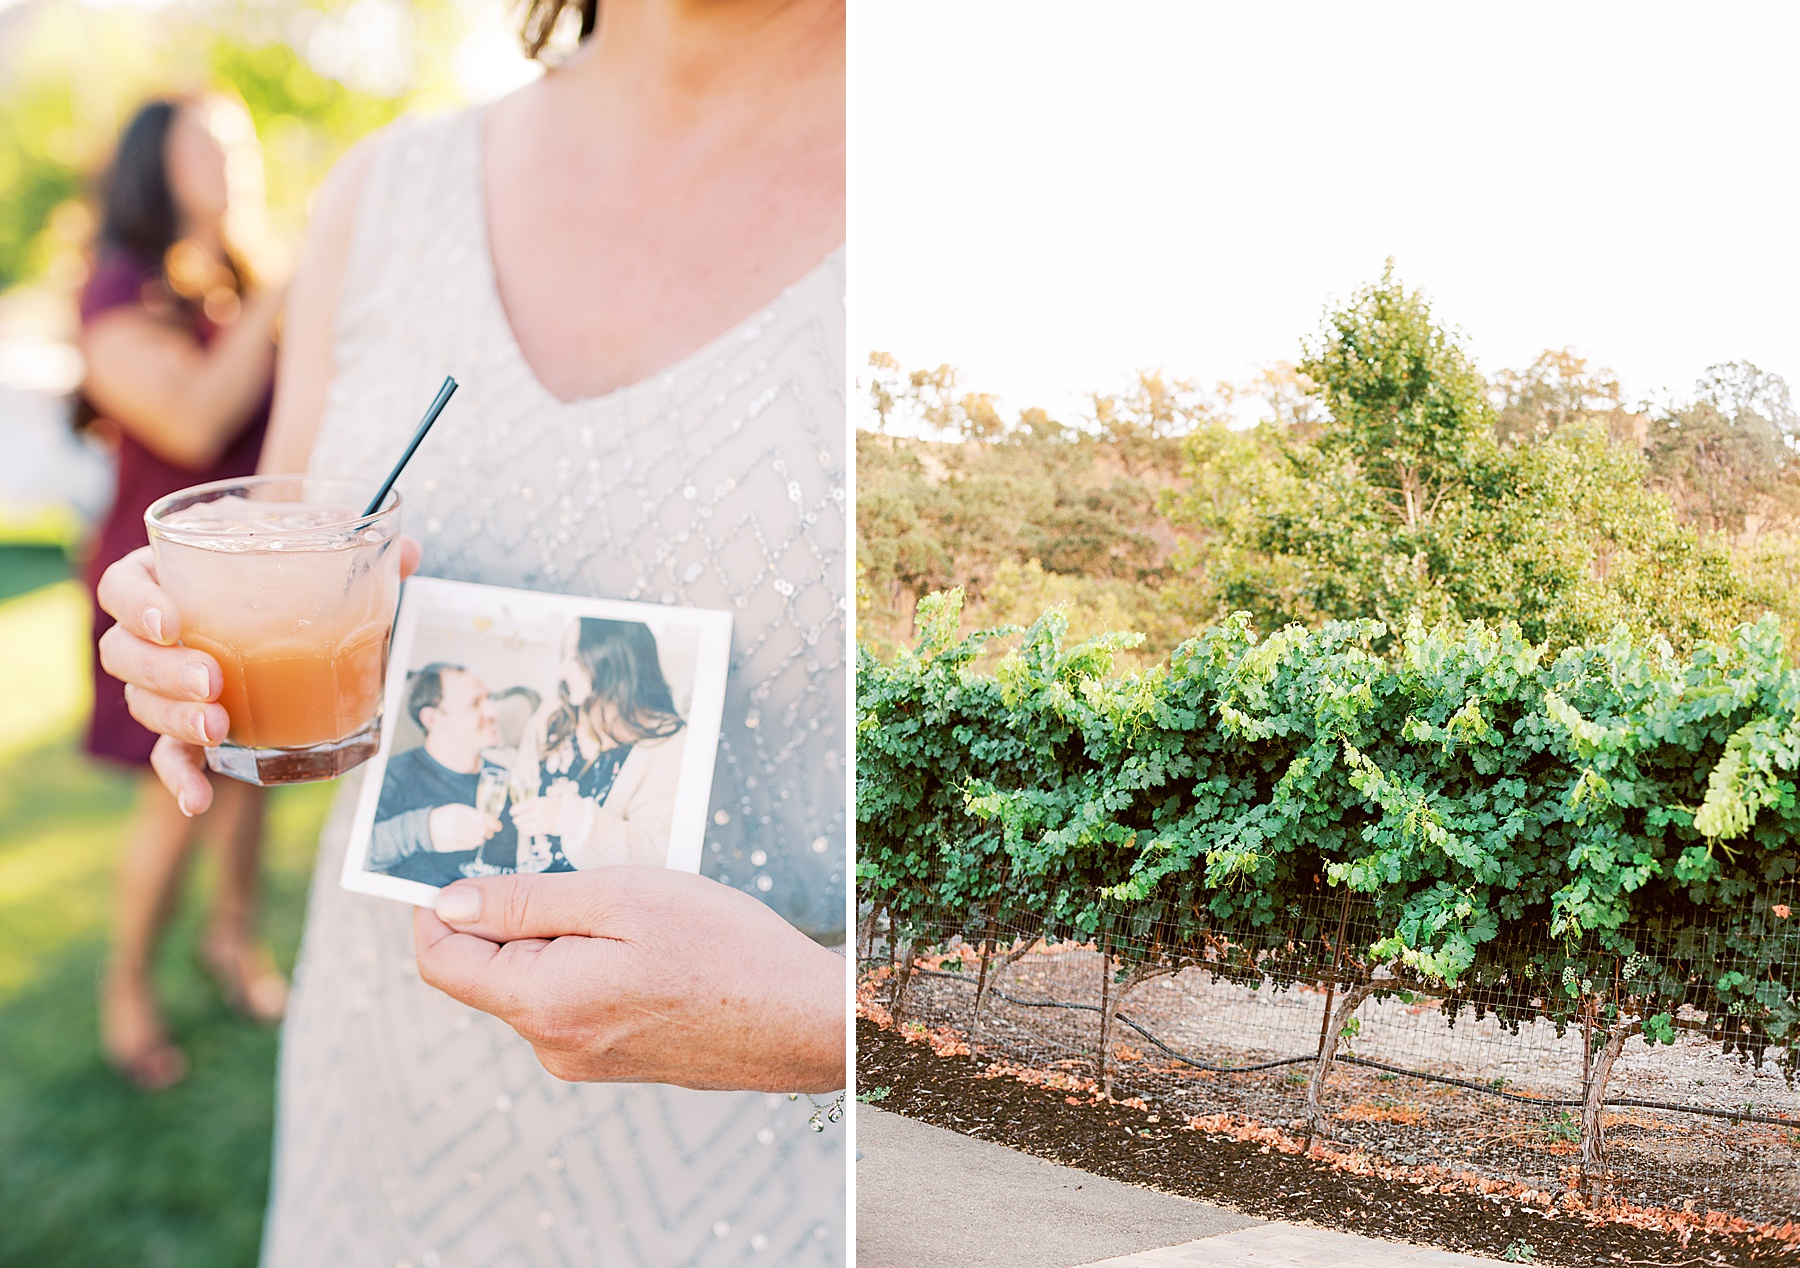 Wente Wedding with A Tropical Color Palette - Ashley & Mike - Featured on Inspired by This - Ashley Baumgartner_0009.jpg